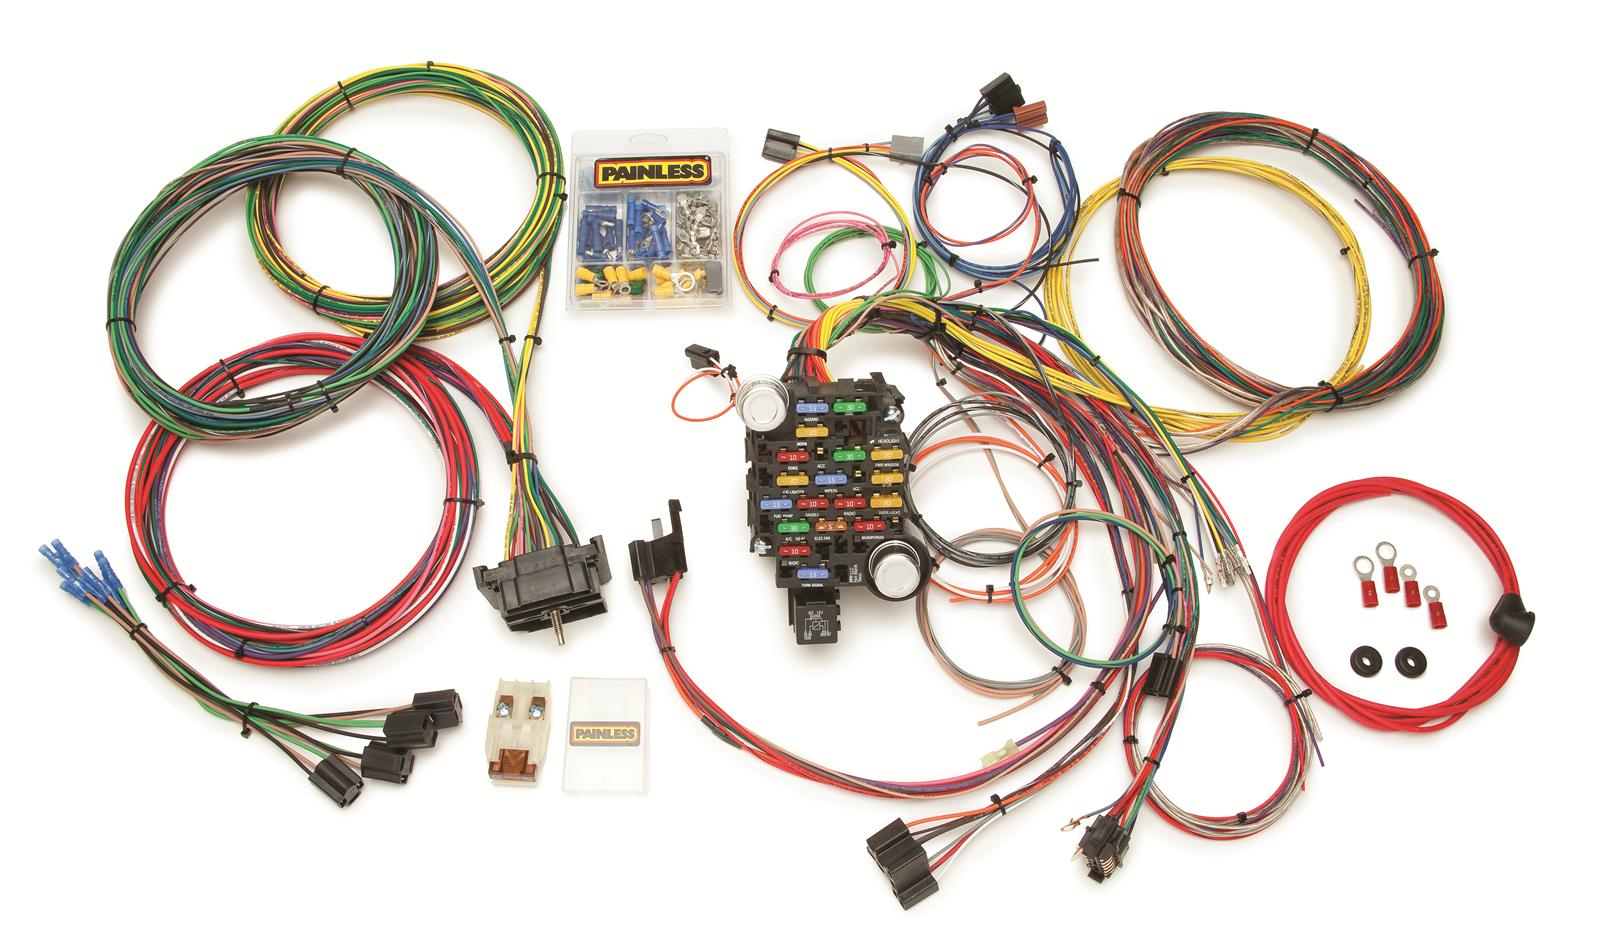 hight resolution of 1984 c10 wiring harness manual e book 1984 chevy c10 wiring harness 1984 c10 wiring harness